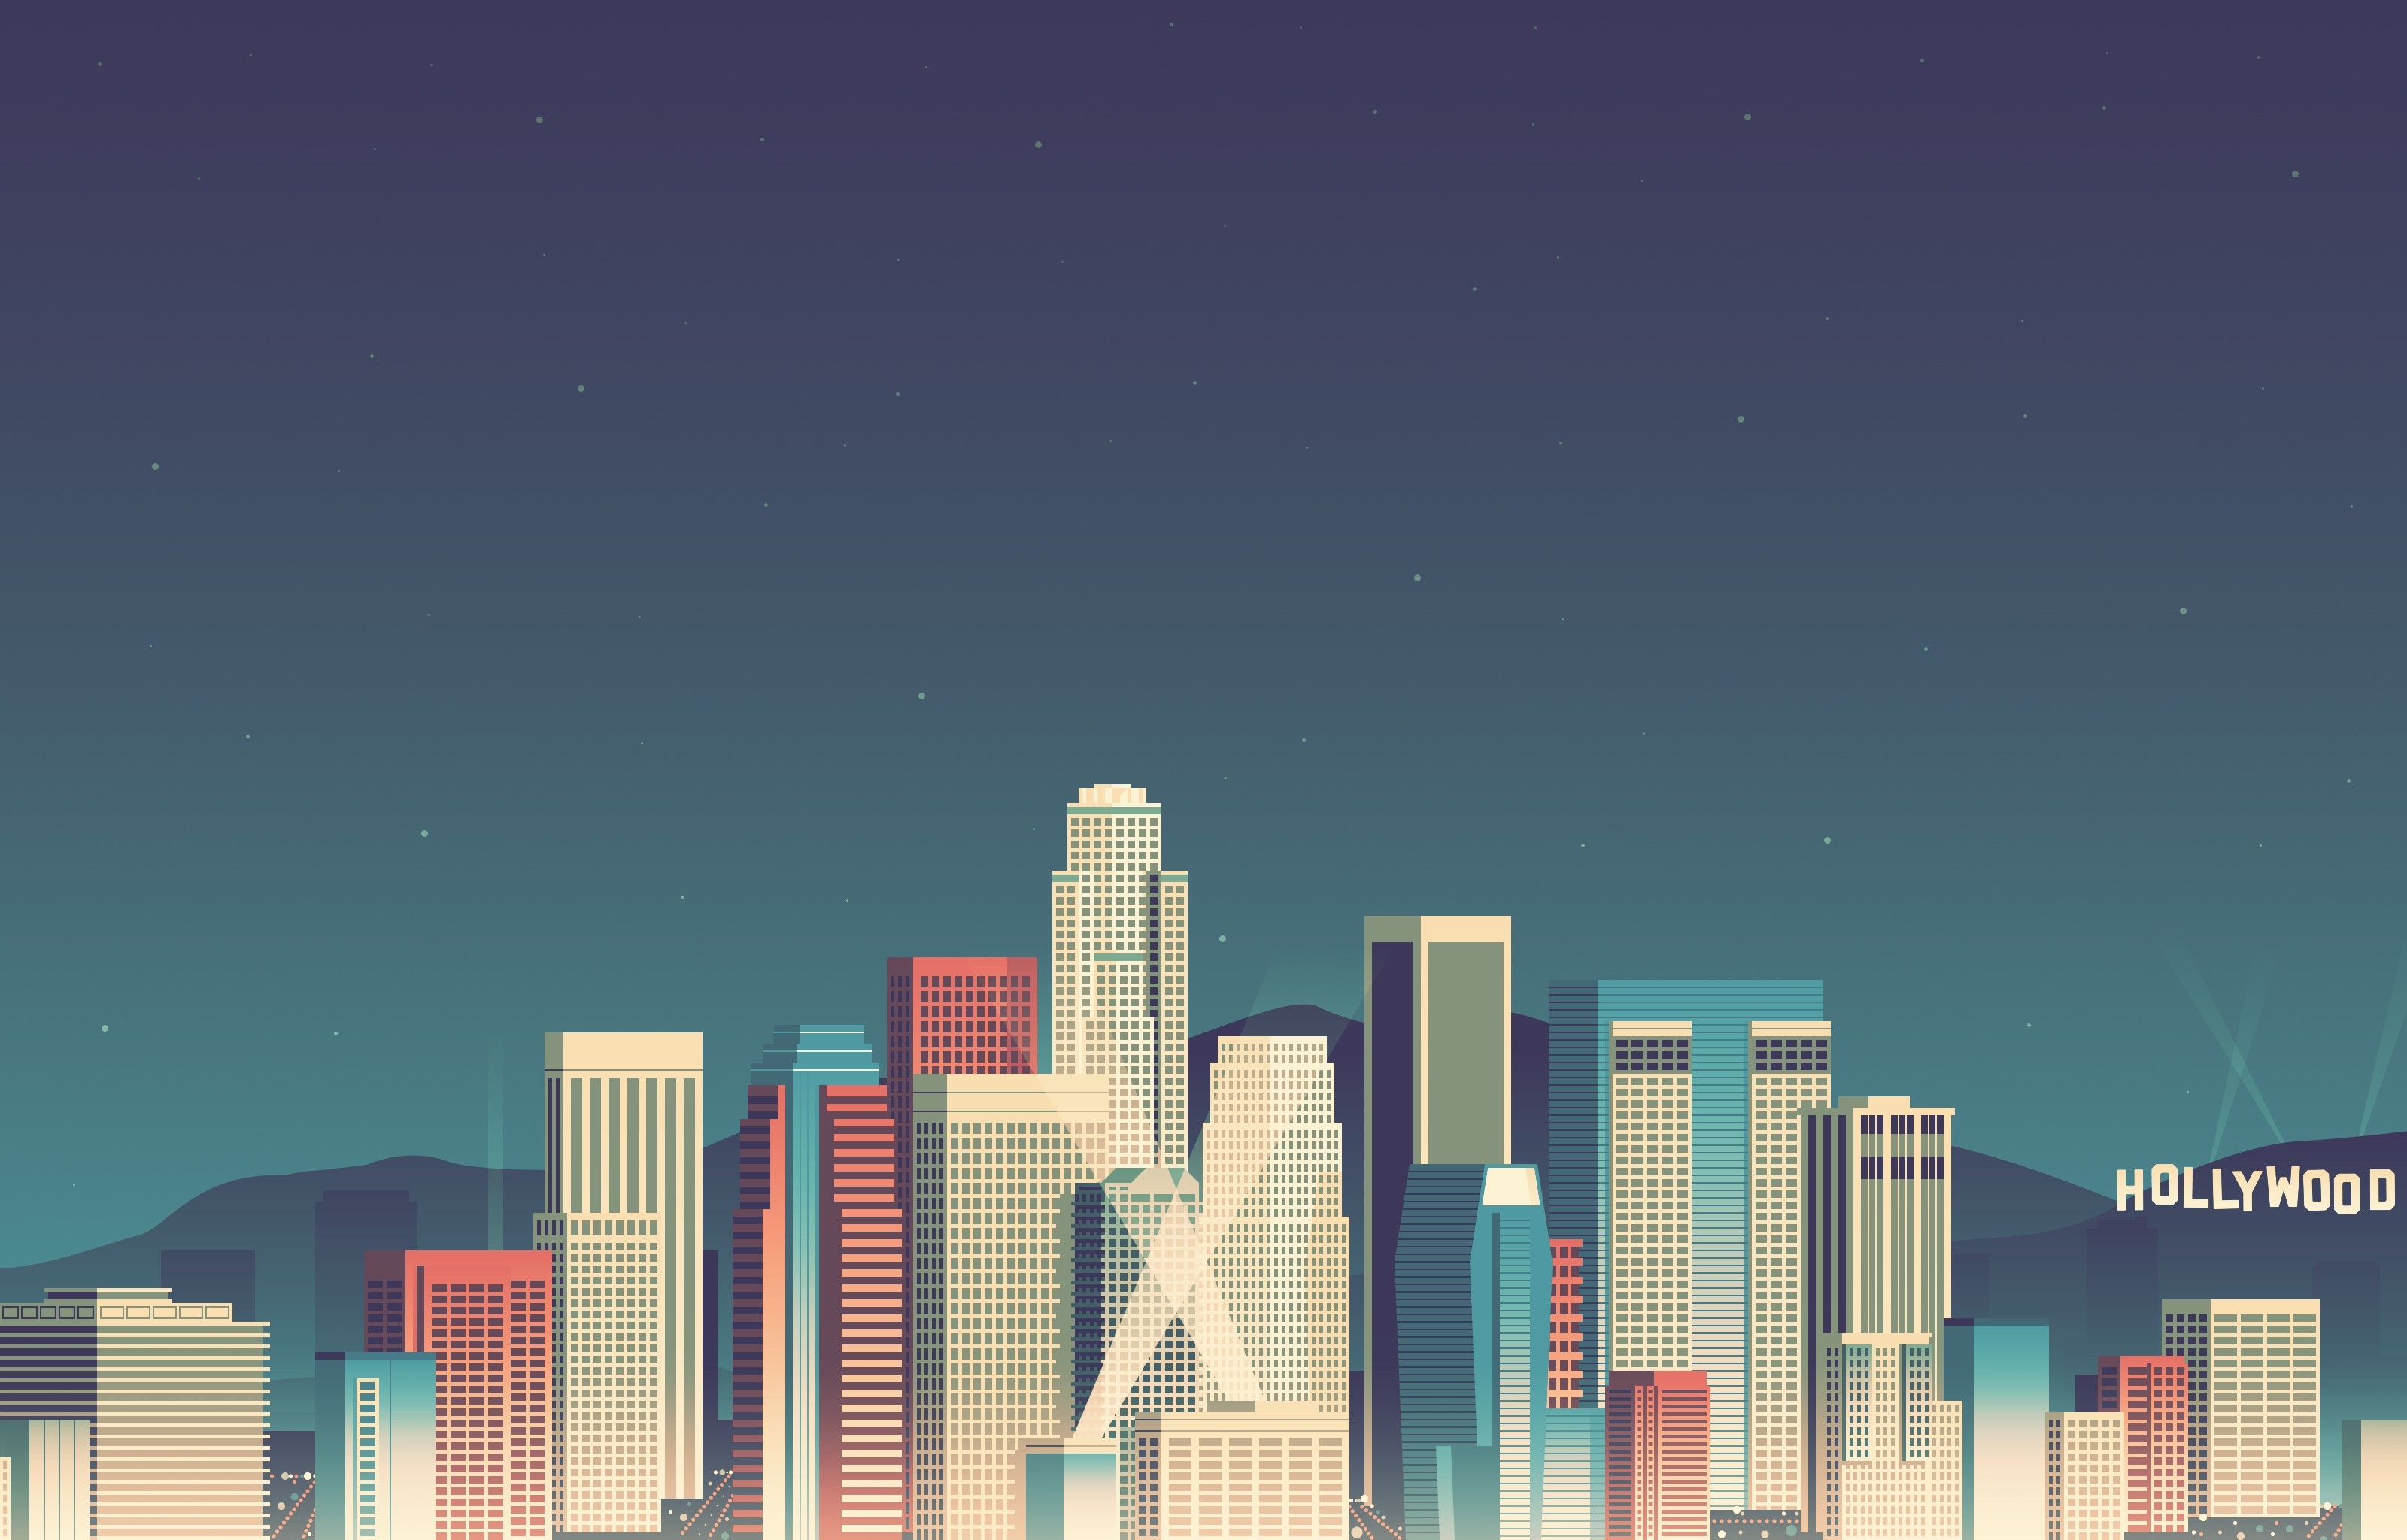 Android Wallpaper: 8-Bit Landscapes - Phandroid